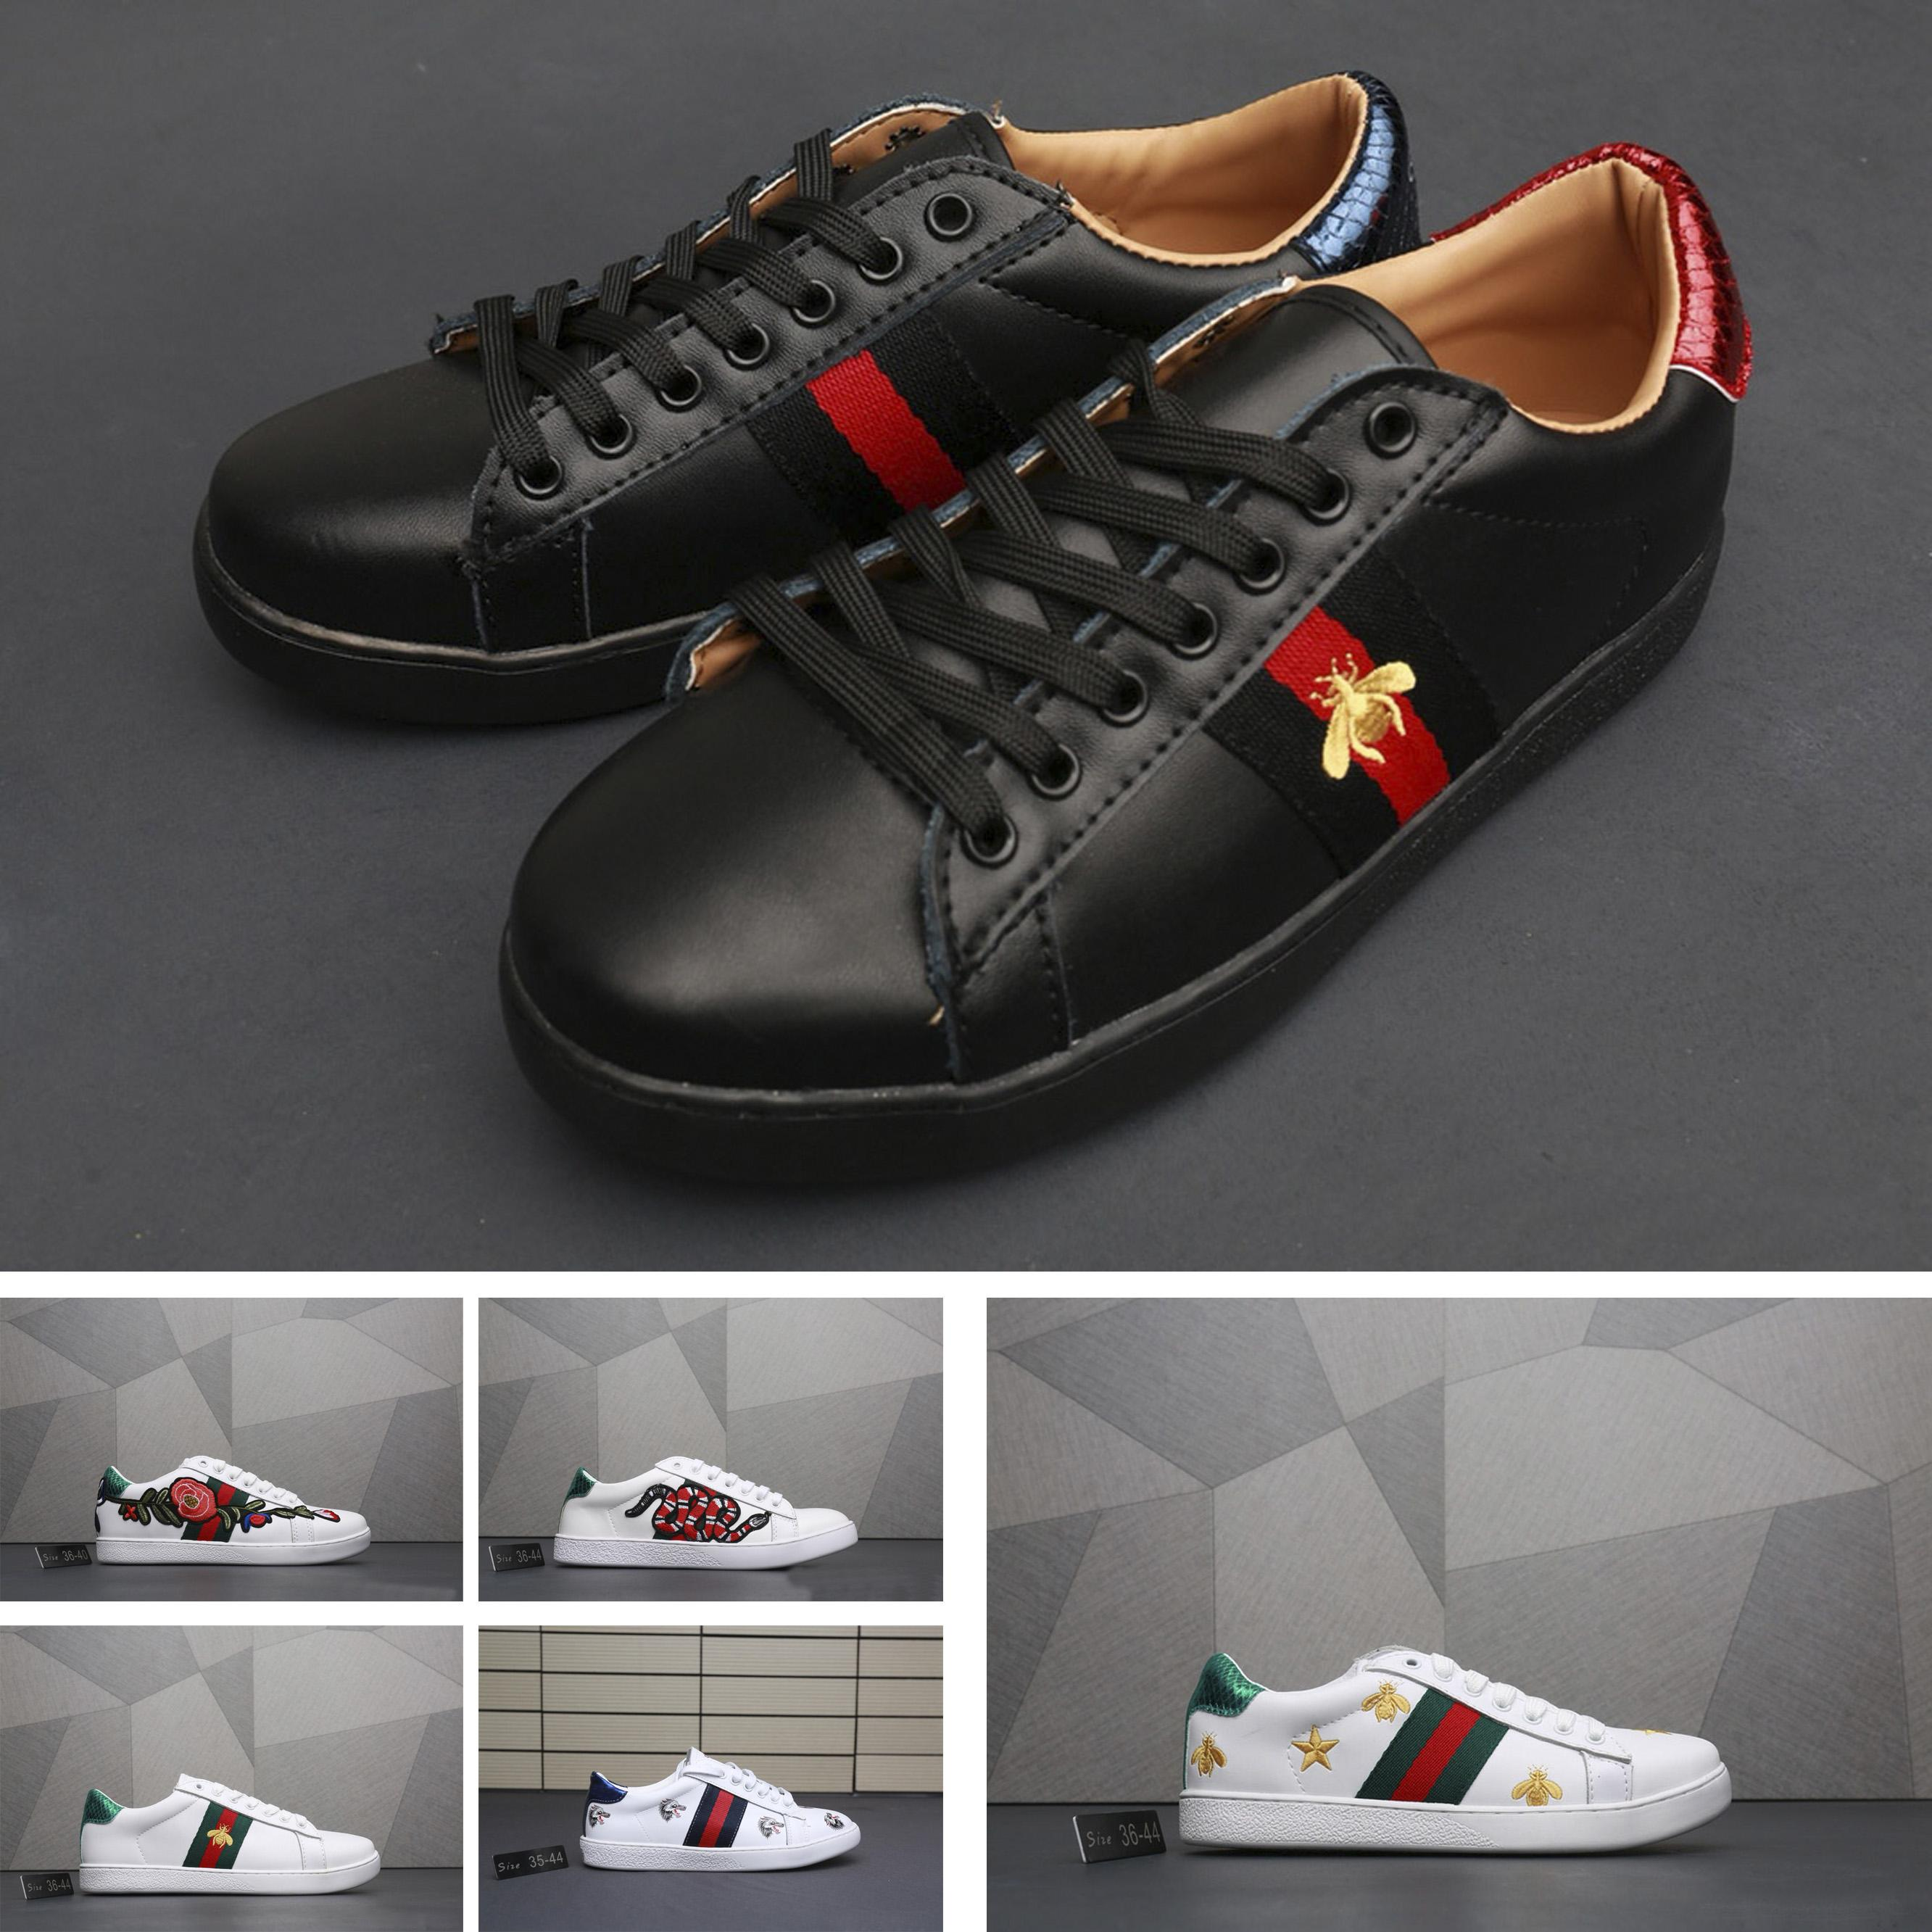 640522d888e17d 2019 Latest Lambskin Embroidered Color Matching Campus Style Fashion  Running Shoes